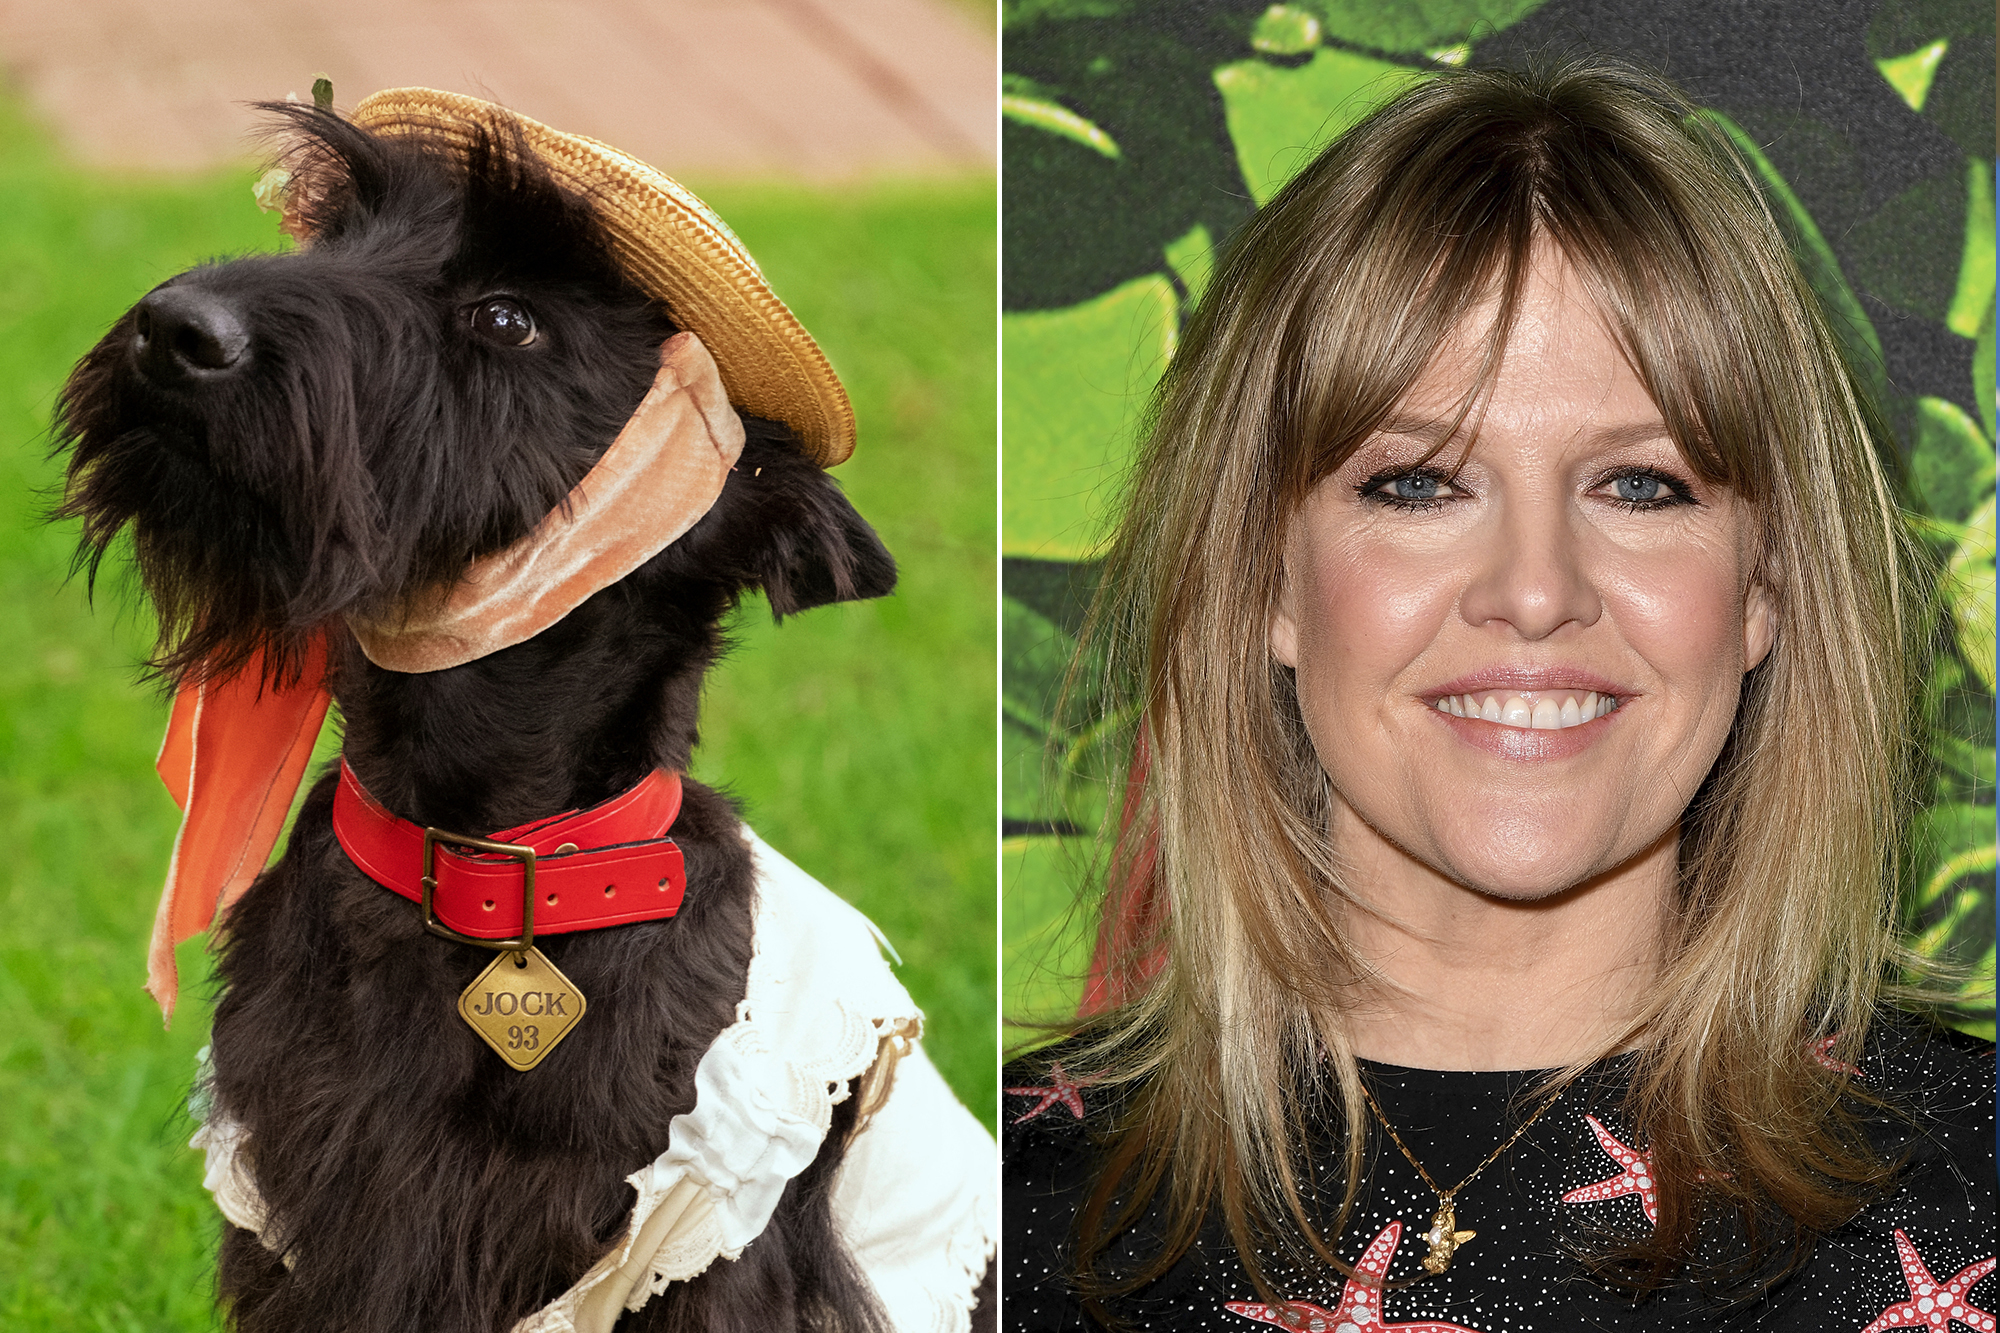 LADY AND THE TRAMP FIRST LOOK